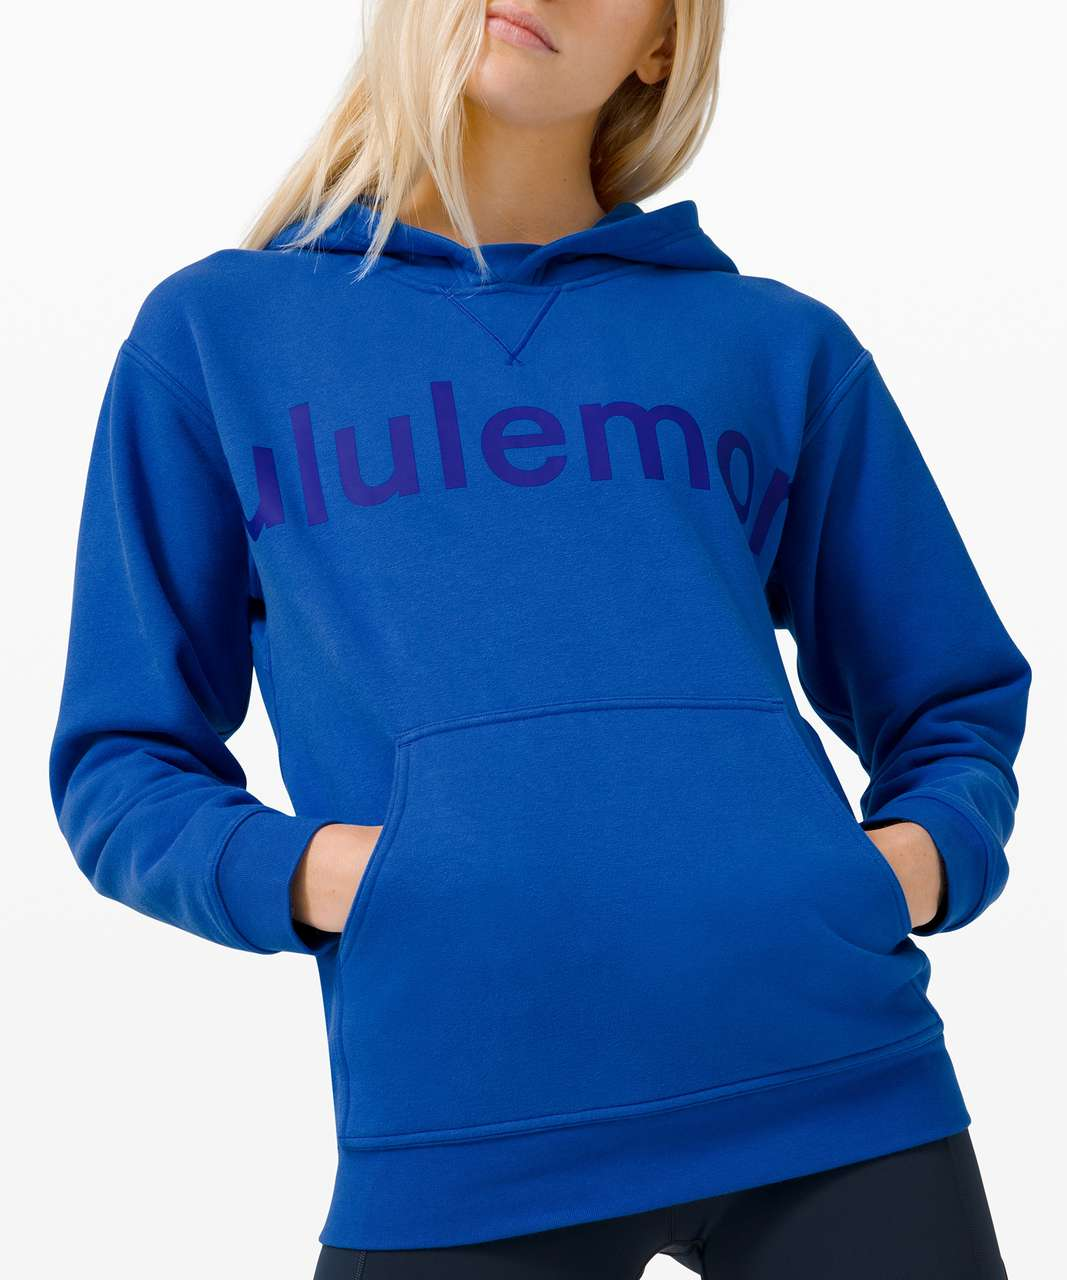 Lululemon All Yours Hoodie *Graphic - Cerulean Blue